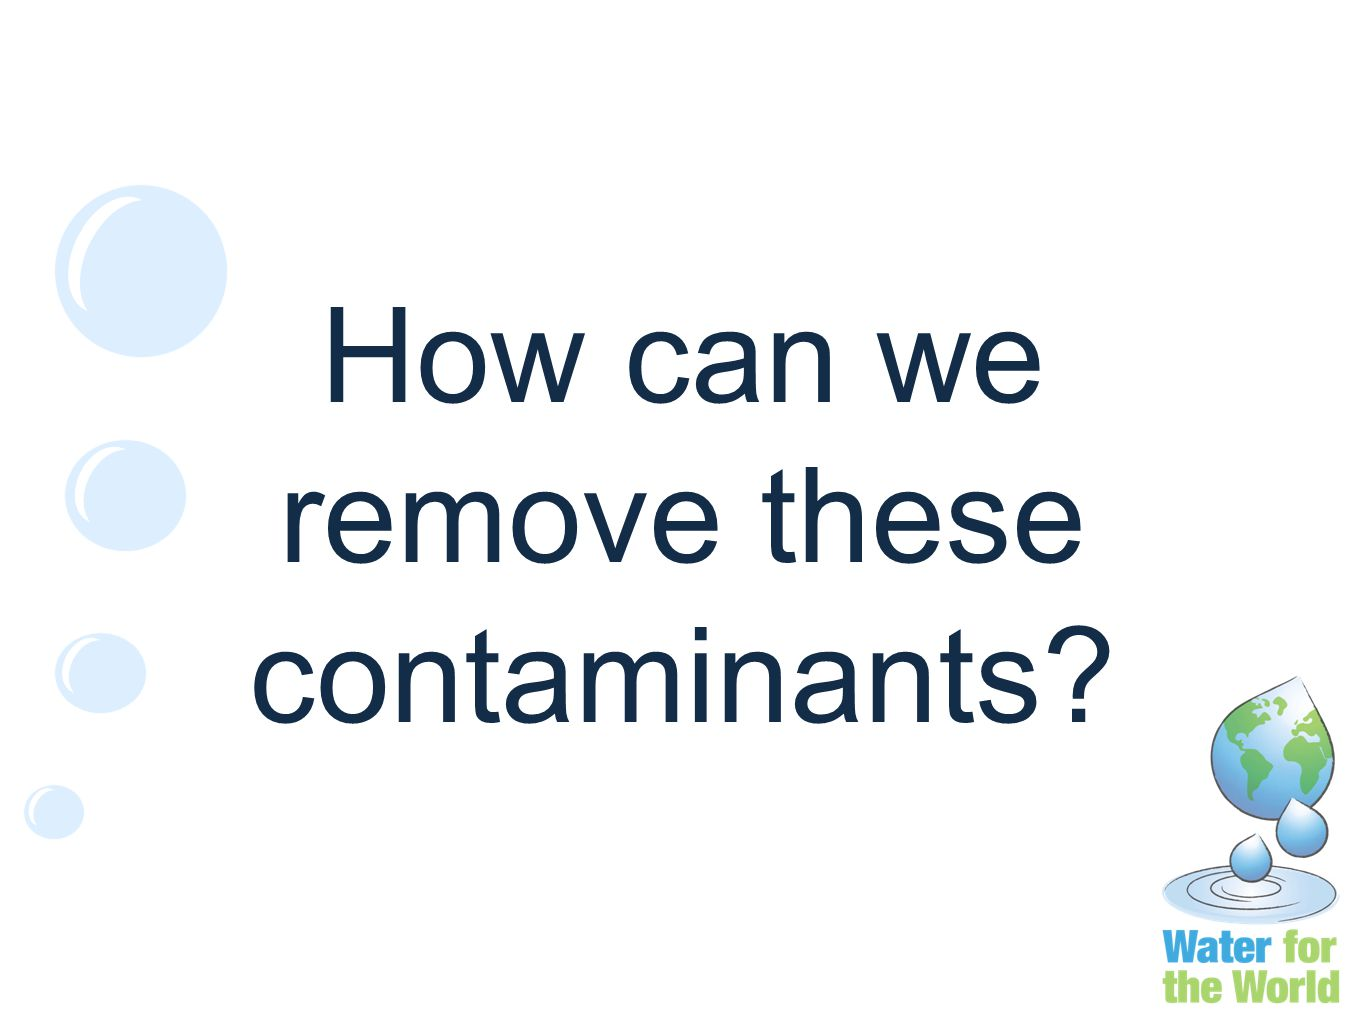 How can we remove these contaminants